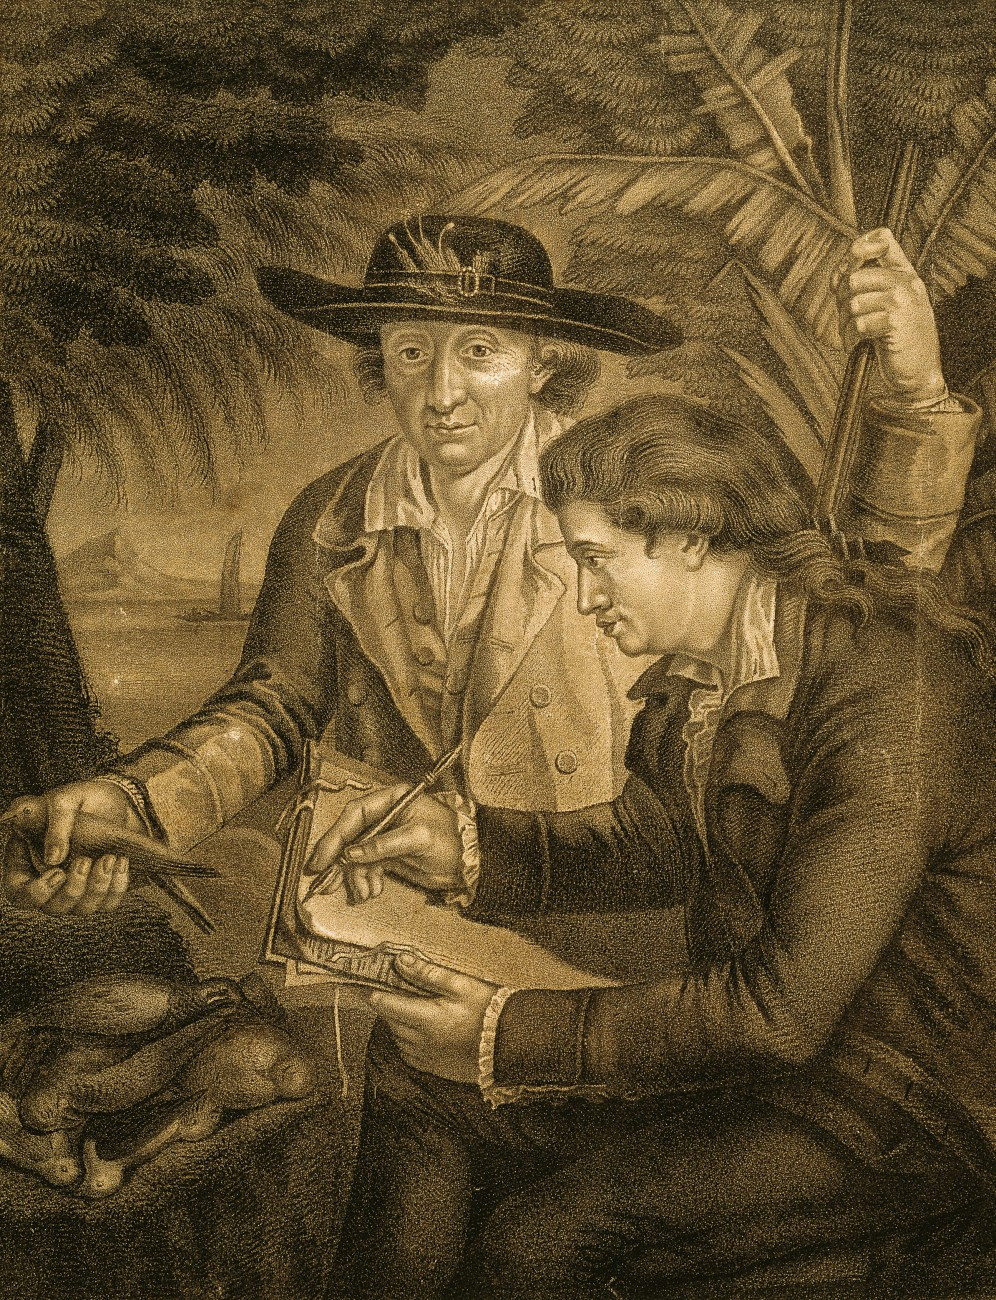 Johann Reinhold Forster and his 18-year-old son Georg were Prussian-born naturalists and illustrators who travelled aboard Cook's second voyage, after Banks withdrew at the last minute. Both men published detailed accounts of the three-year voyage on their return to England.